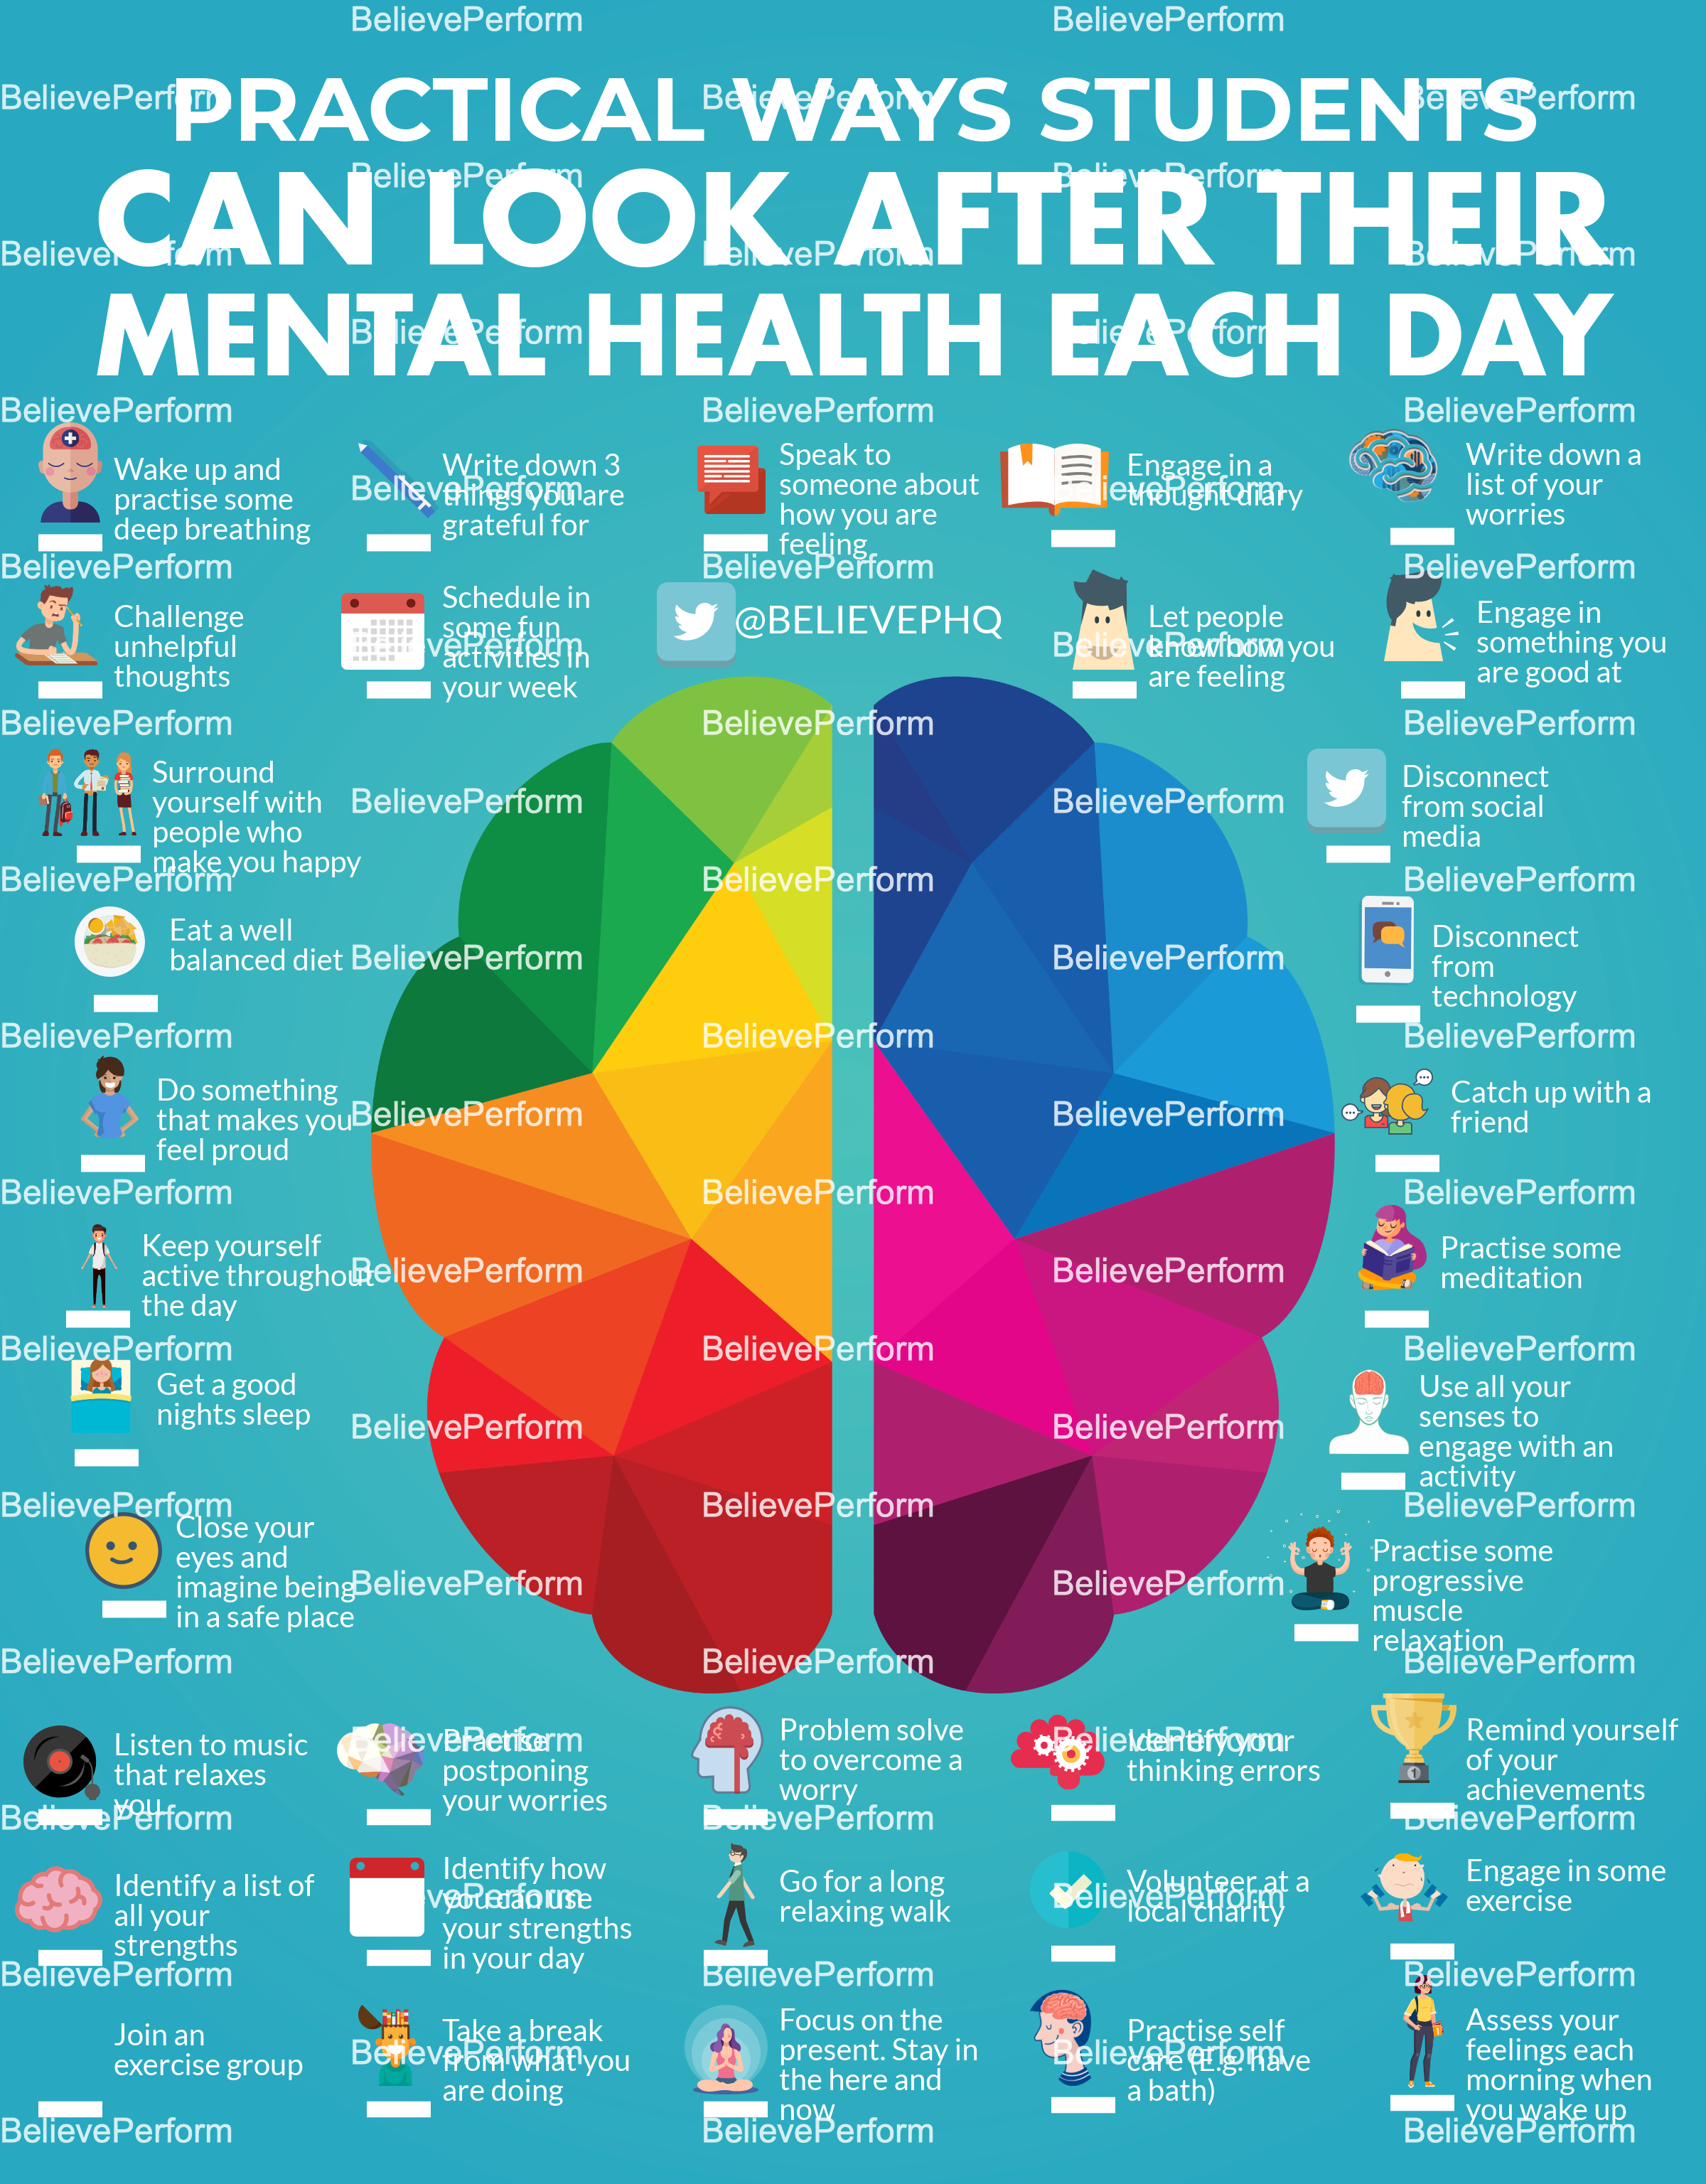 Practical ways students can look after their mental health each day